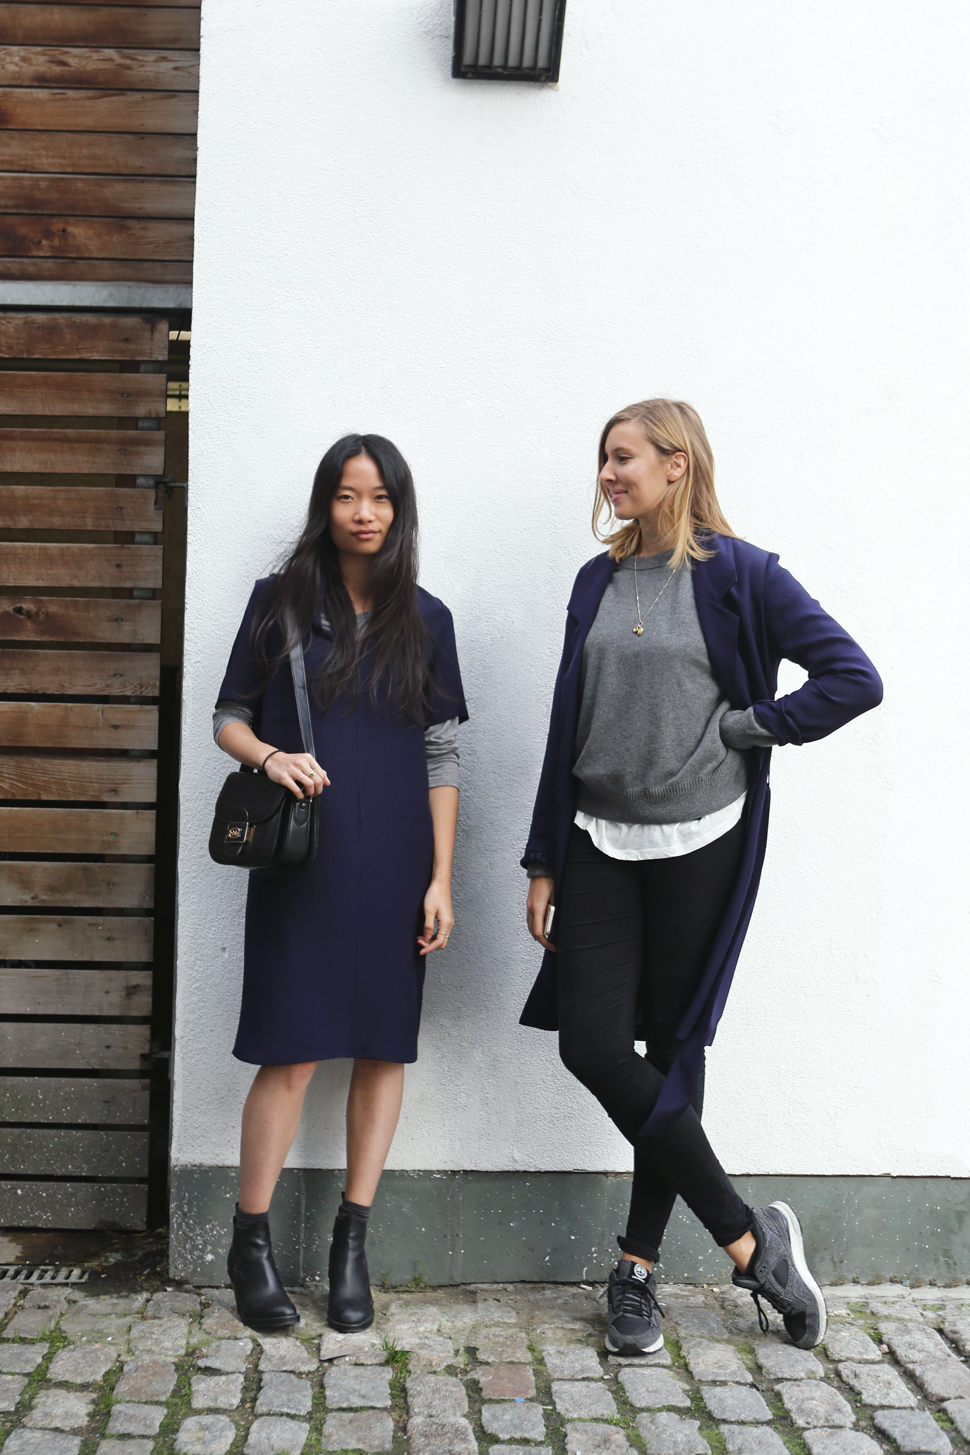 The Pressery girls wearing MARINA London